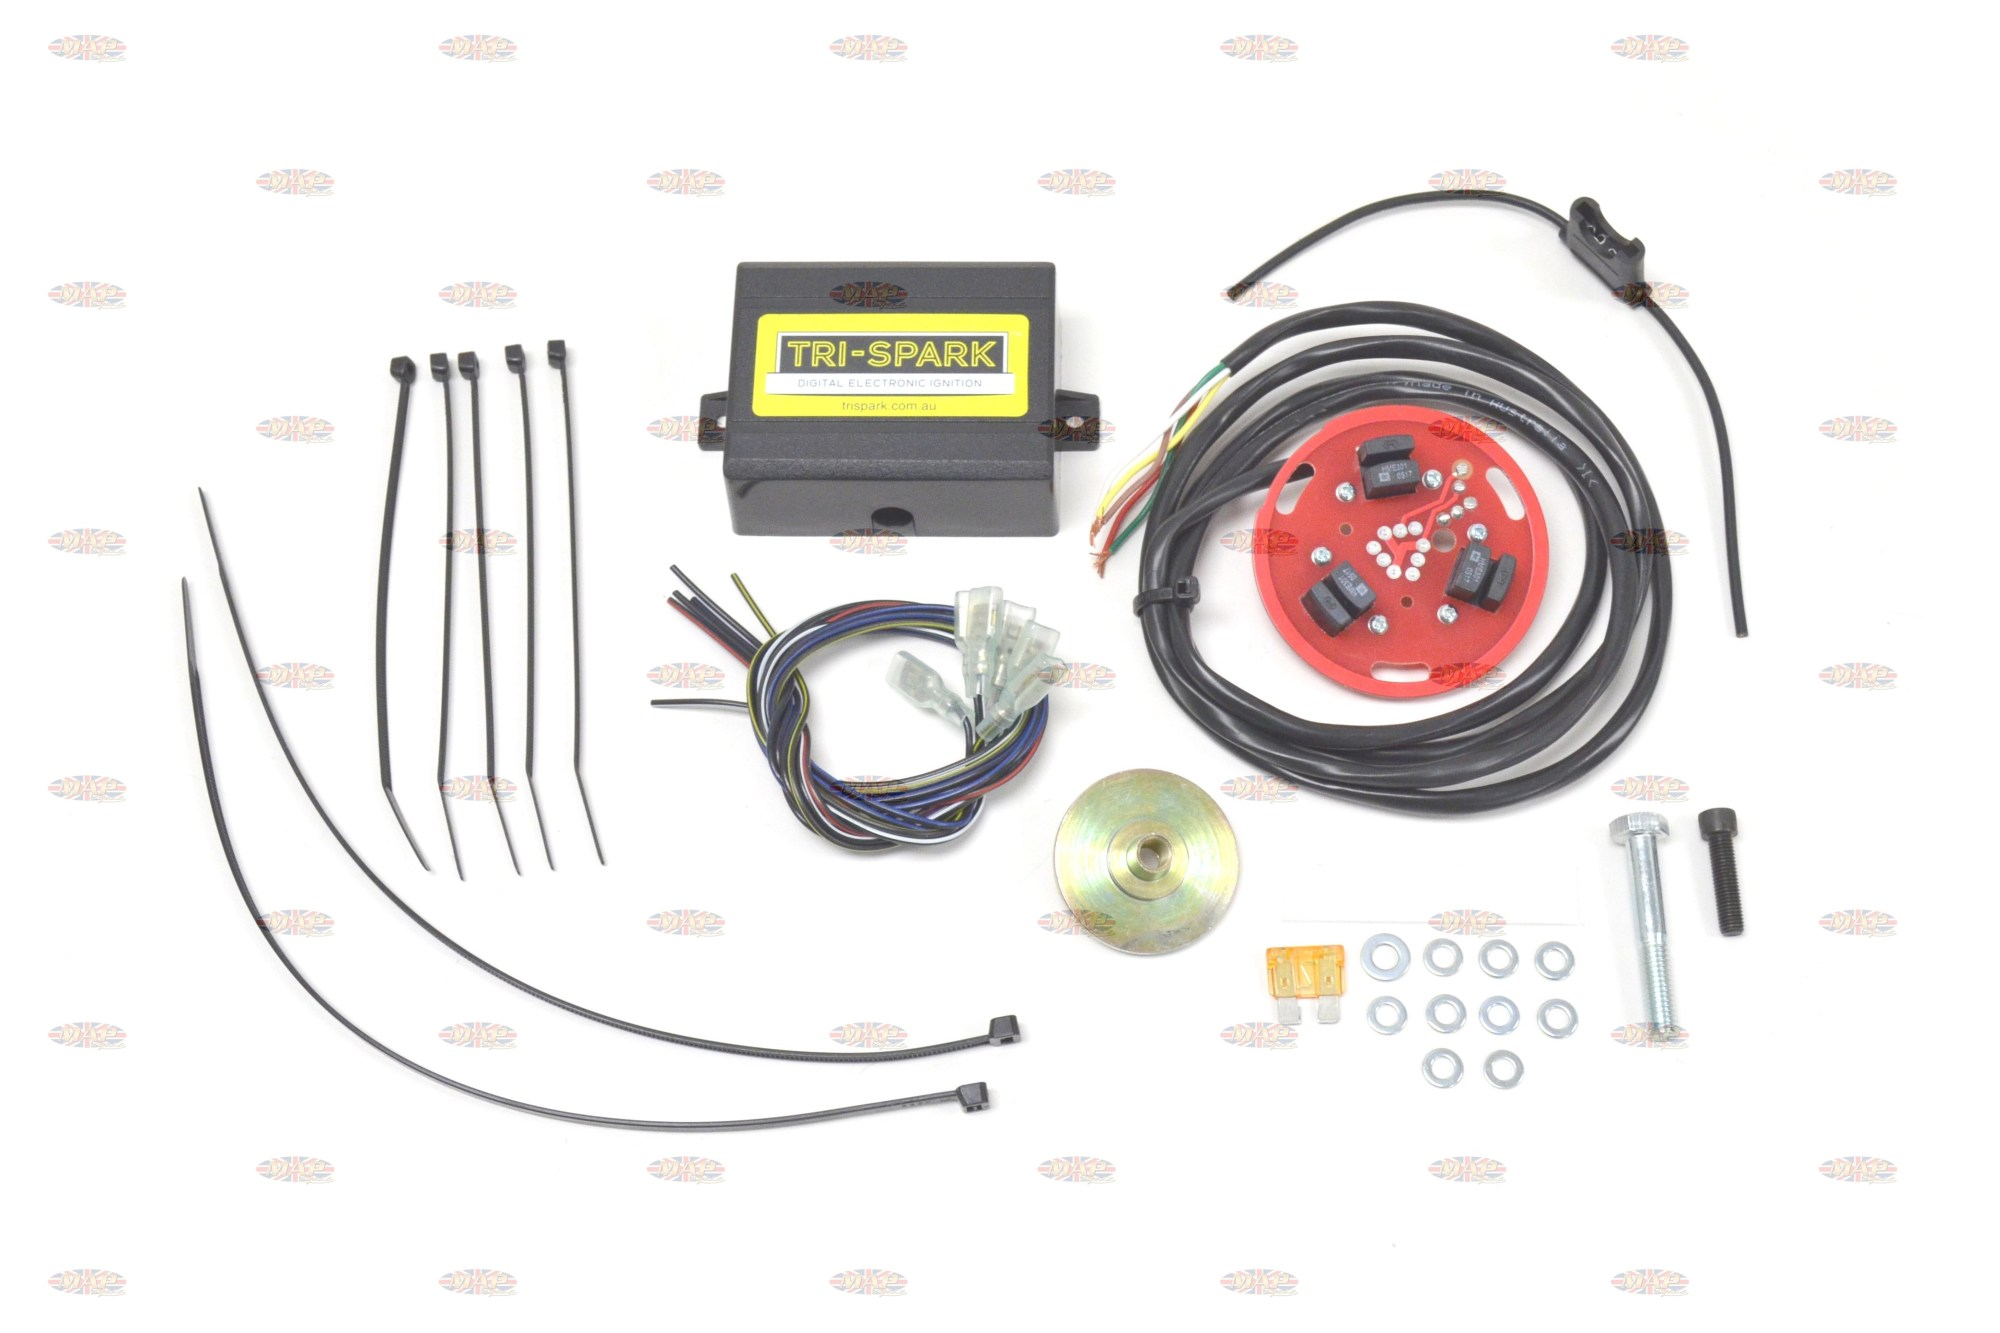 hight resolution of tri spark triumph trident bsa rocket 3 digital electronic ignition rh mapcycle com triumph motorcycle electronic ignition boyer bransden electronic ignition